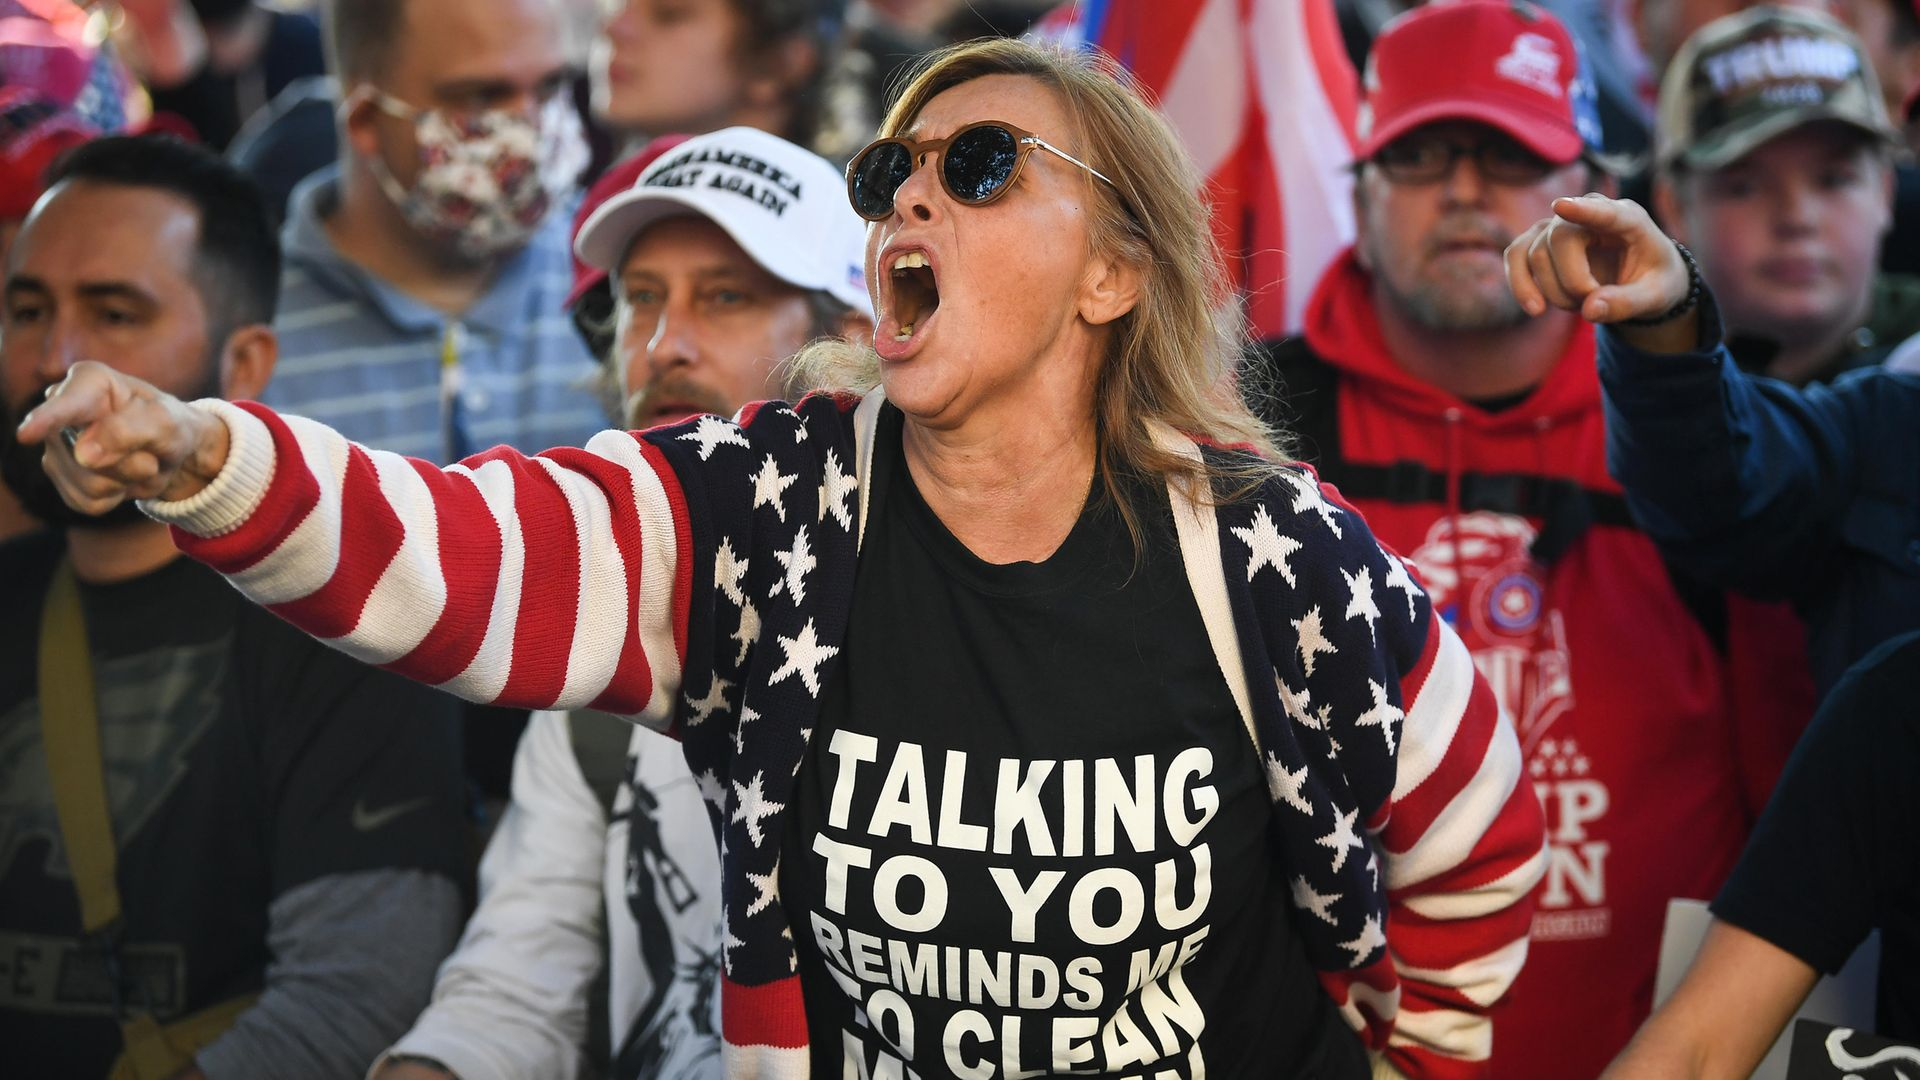 Pro-Trump supporters storming the Capitol Building in Washington D.C - Credit: CQ-Roll Call, Inc via Getty Images